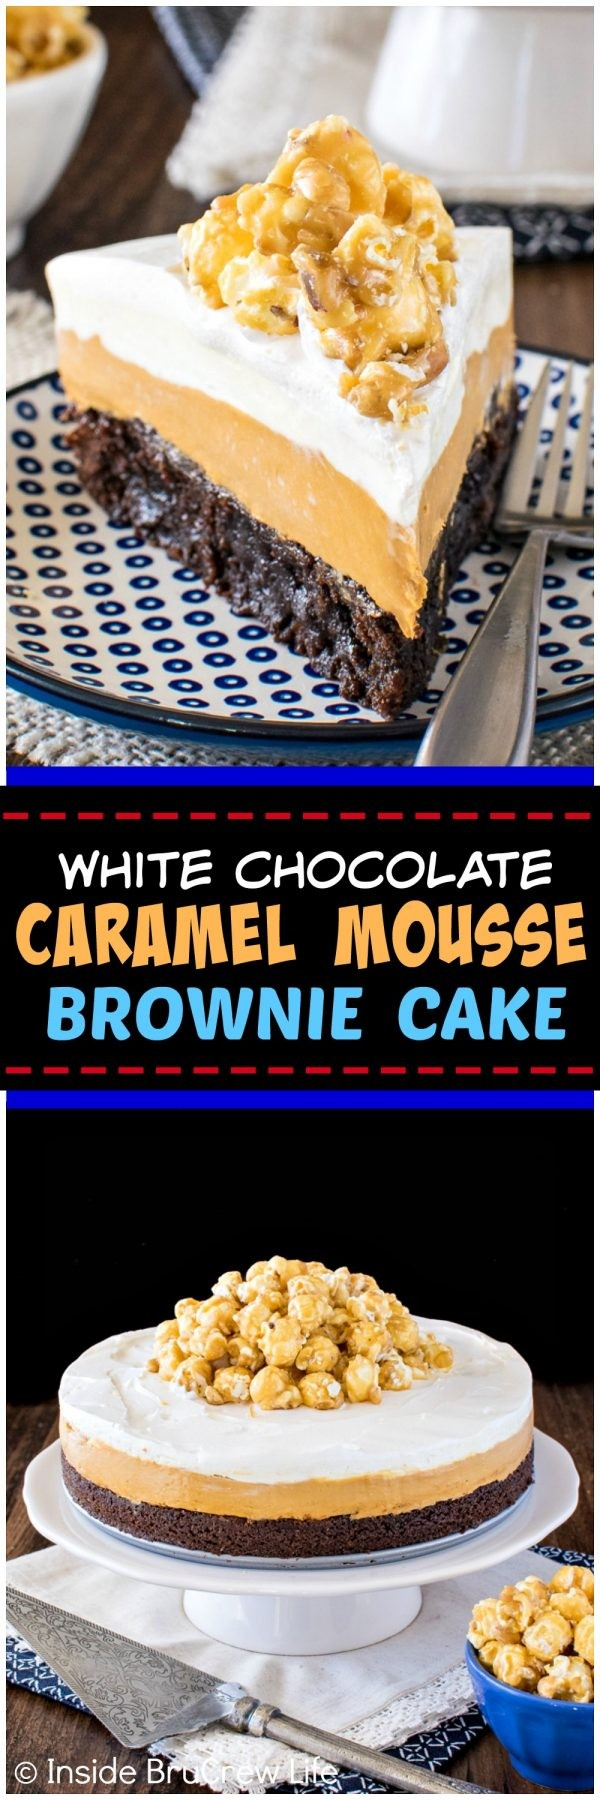 White Chocolate Caramel Mousse Brownie Cake - layers of fudgy brownie & no bake cheesecake mousse make this a must make dessert. Great recipe for parties!